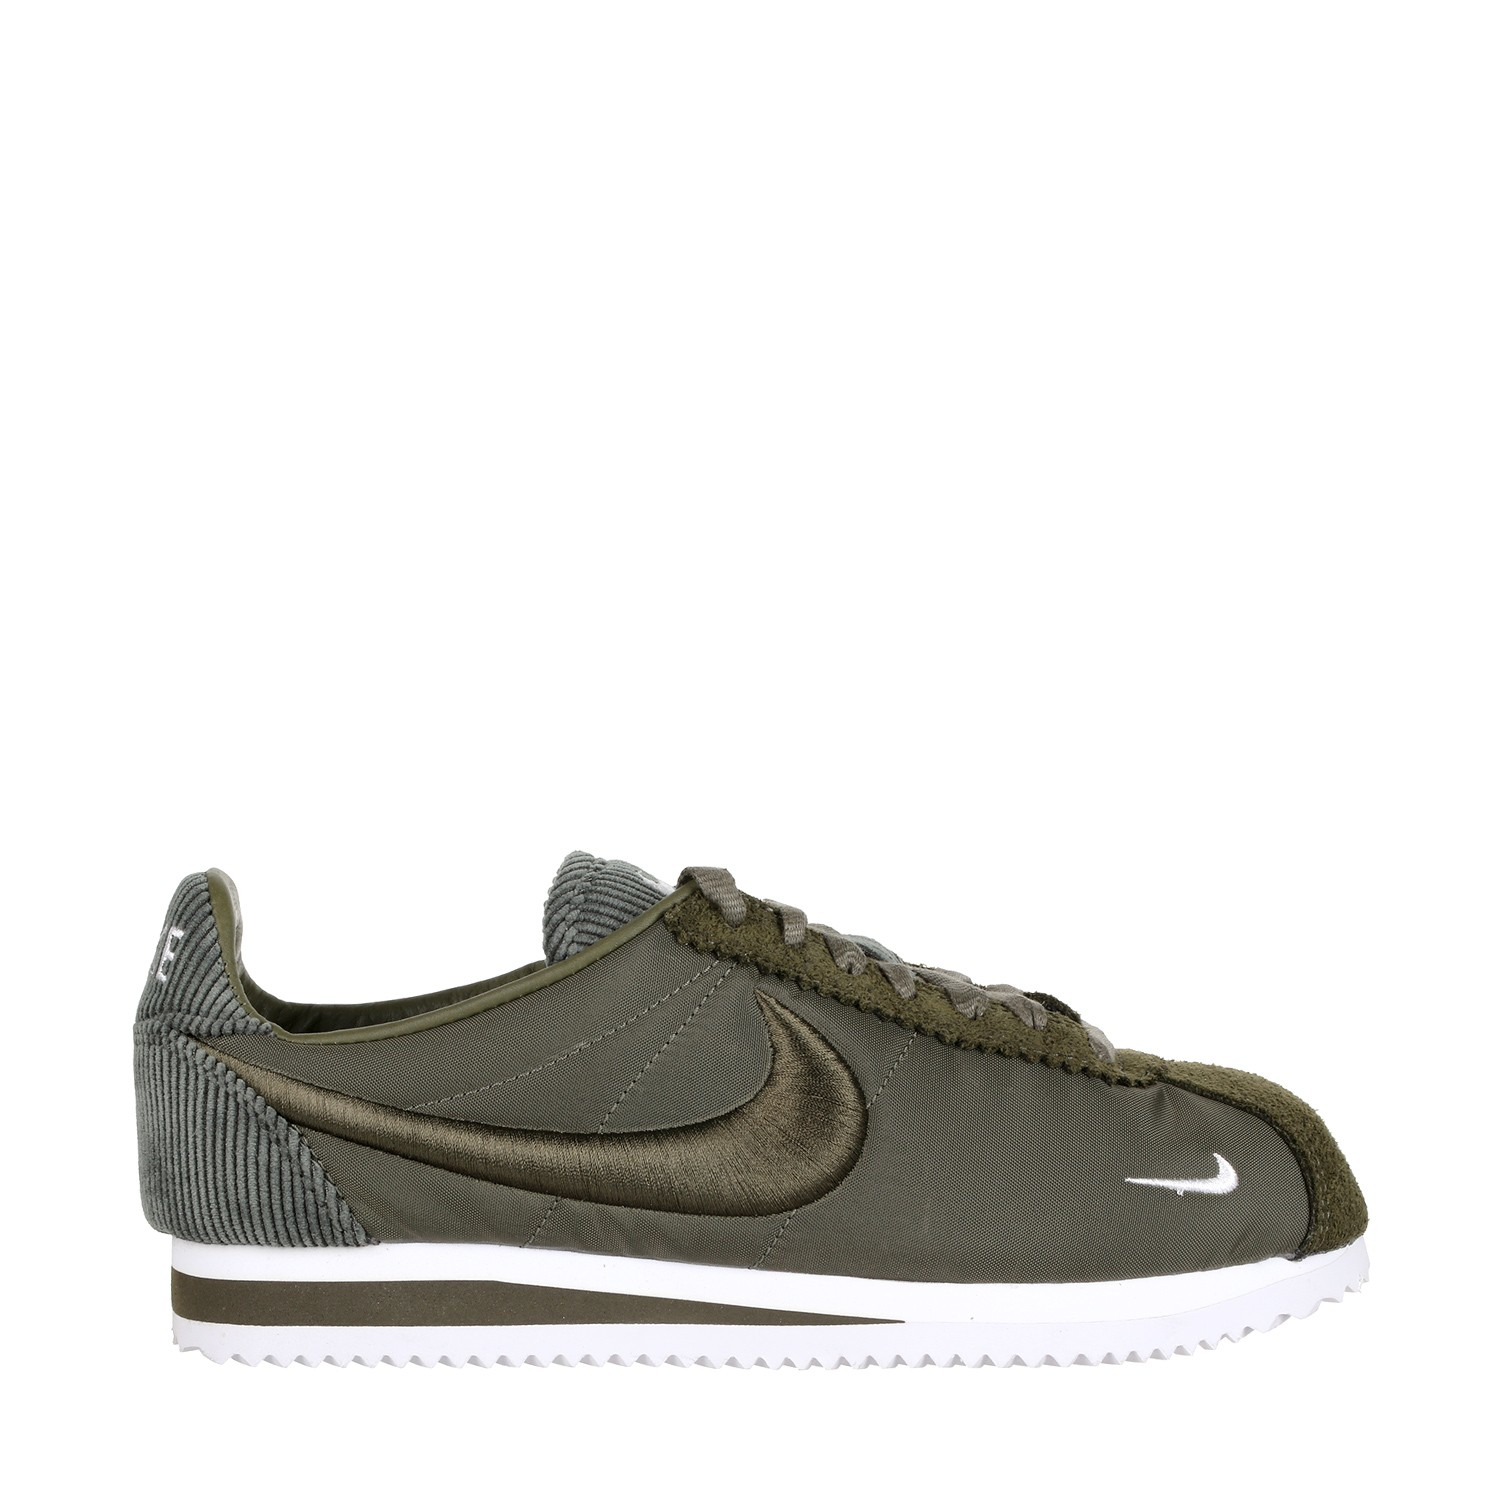 "Nike Classic Cortez Sp ""Cord"" in Green for Men 